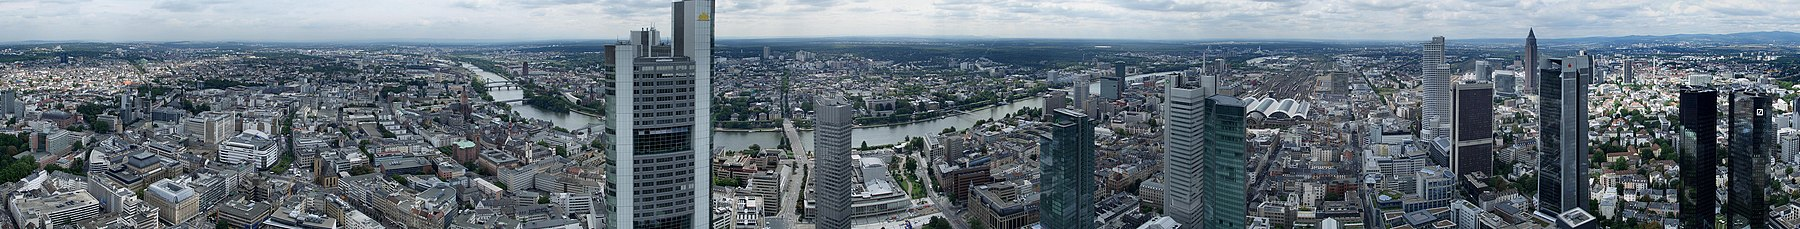 Panorama över Frankfurt am Main